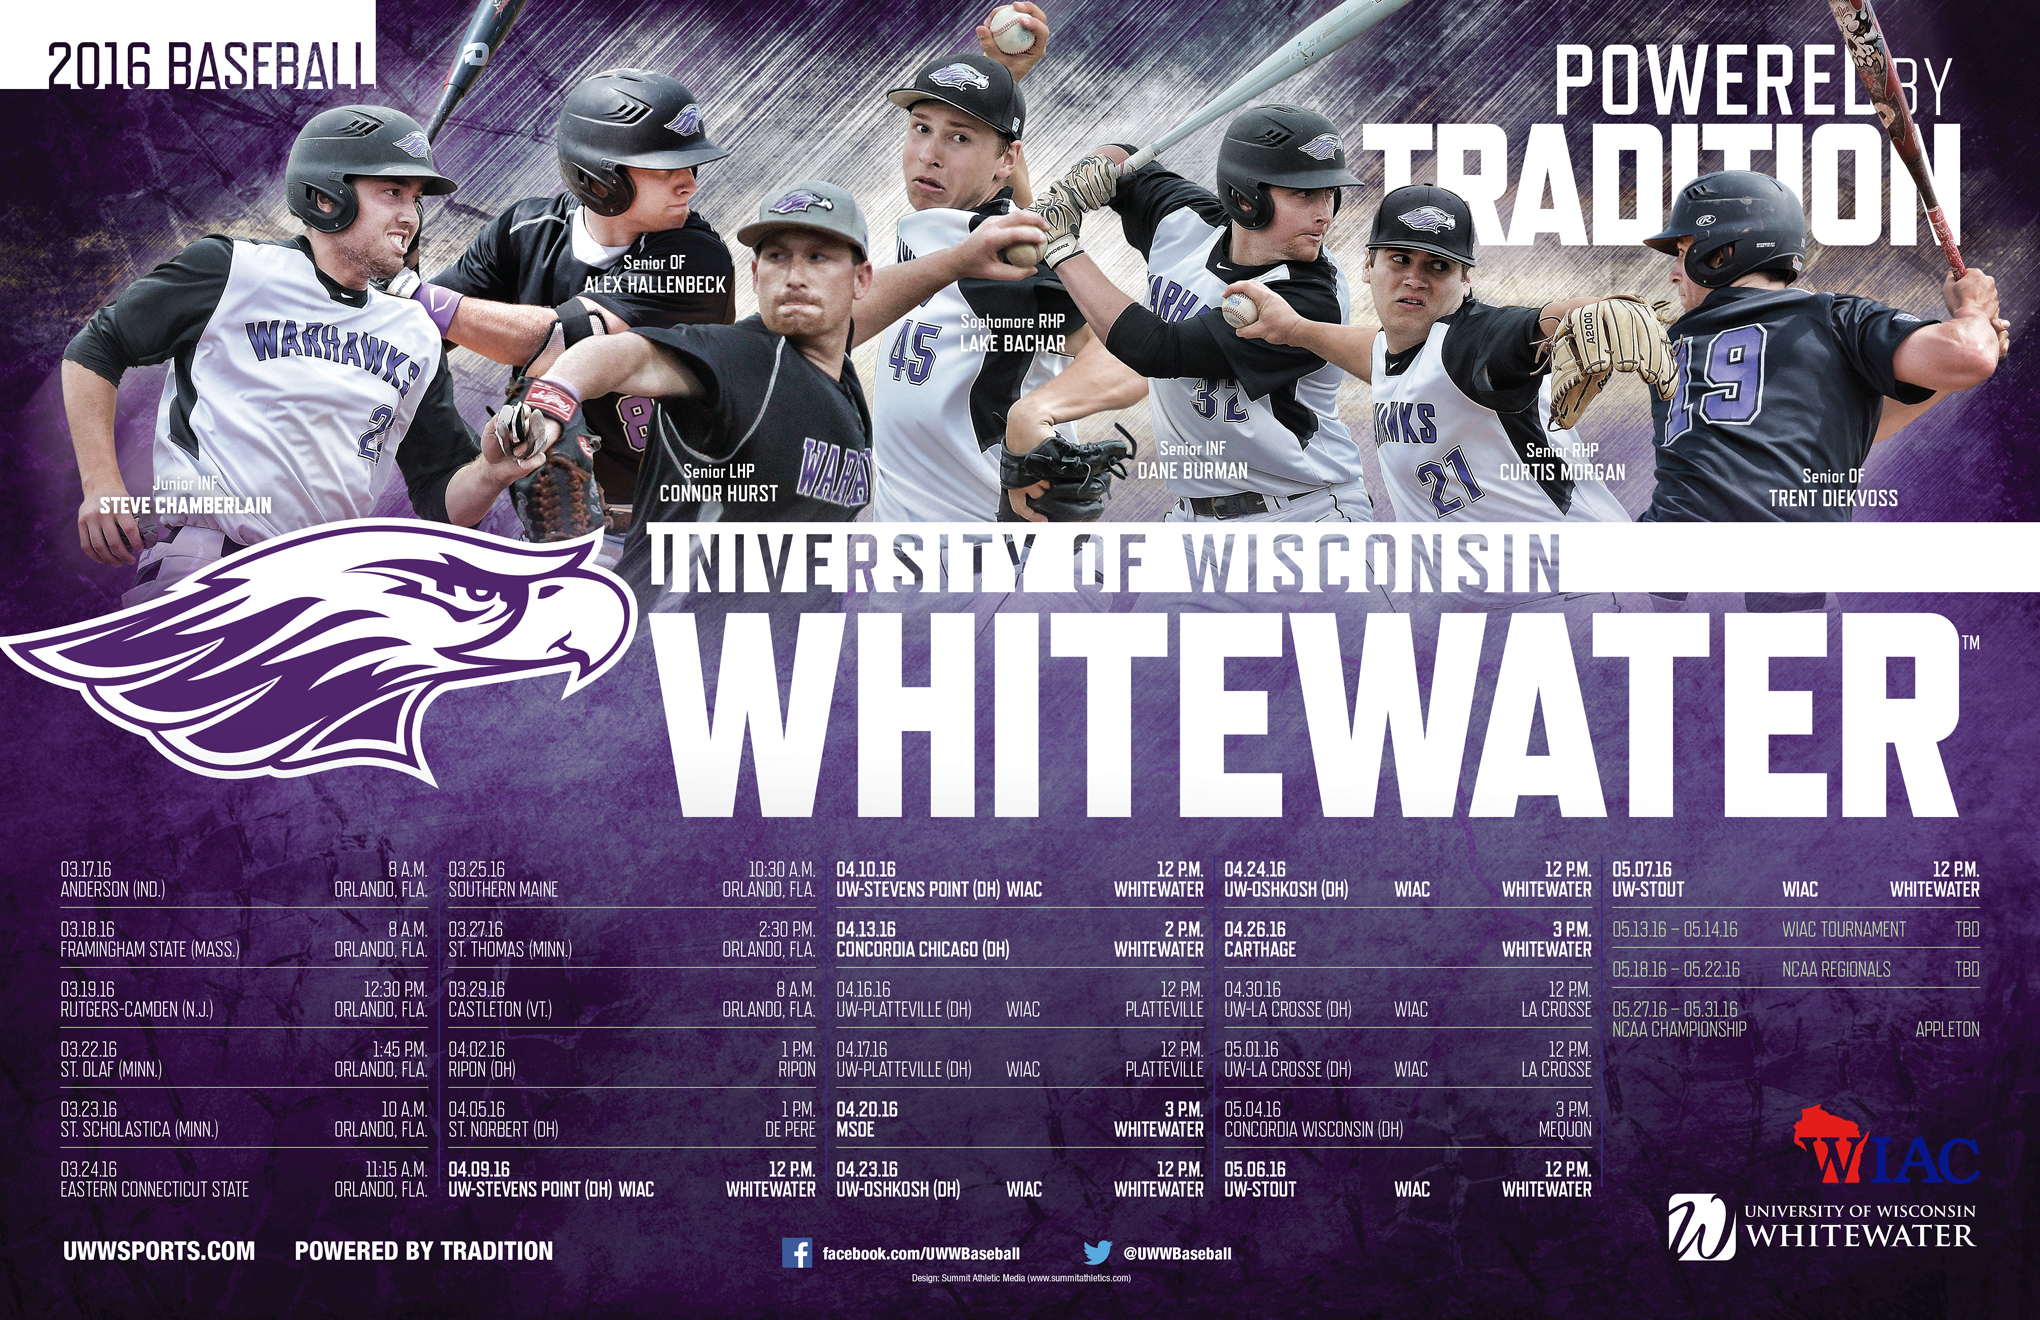 1457986314 2016 uw whitewater baseball poster final